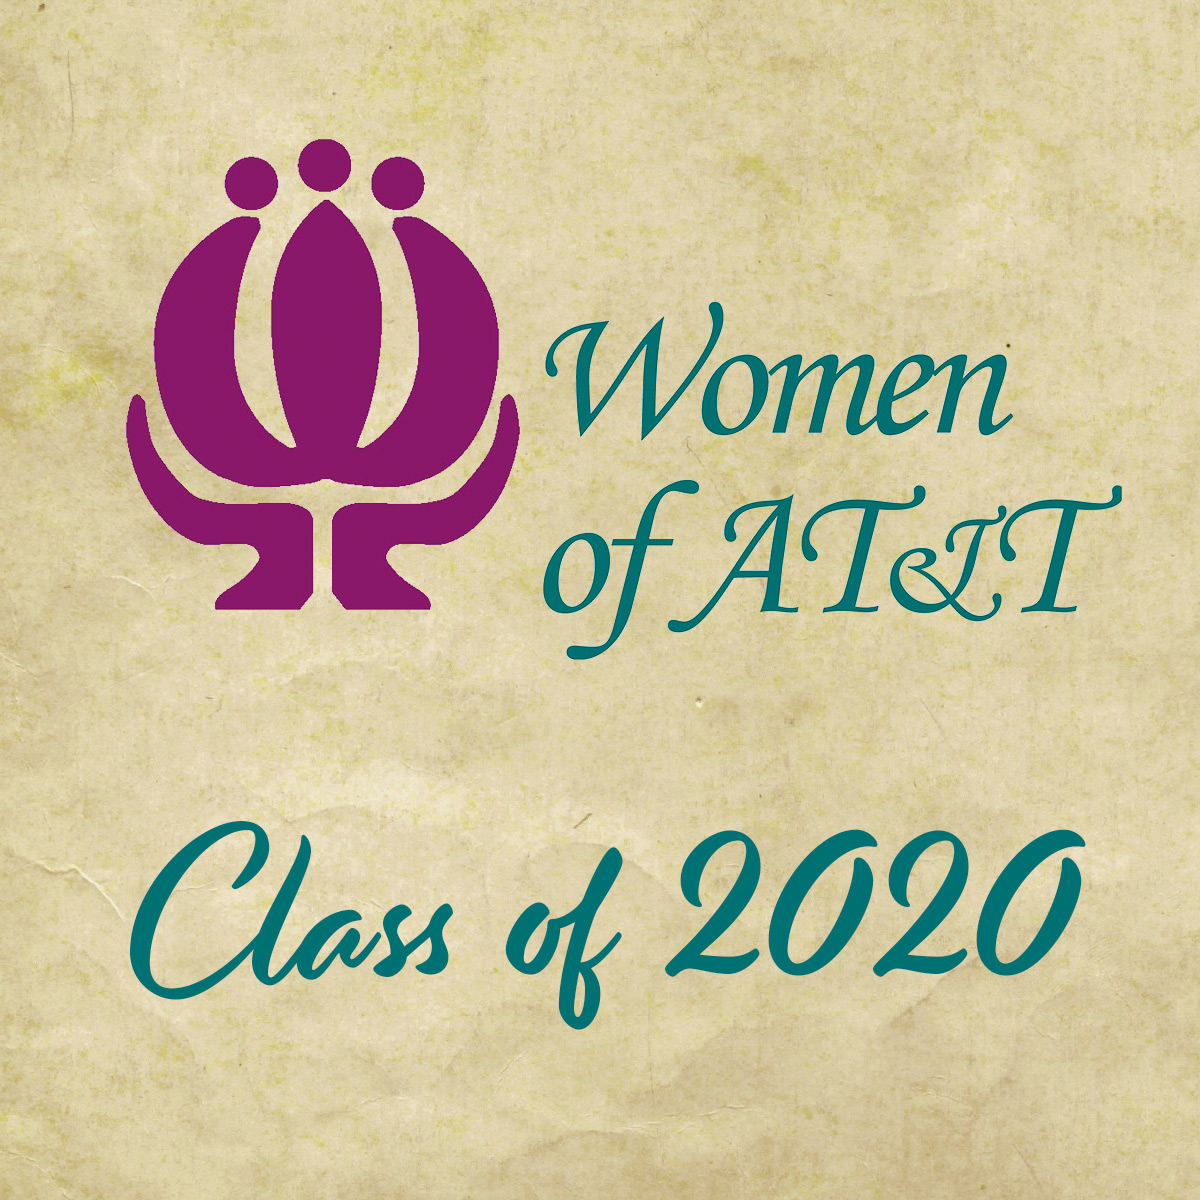 Congratulations to Our 2020 Women of AT&T Scholars